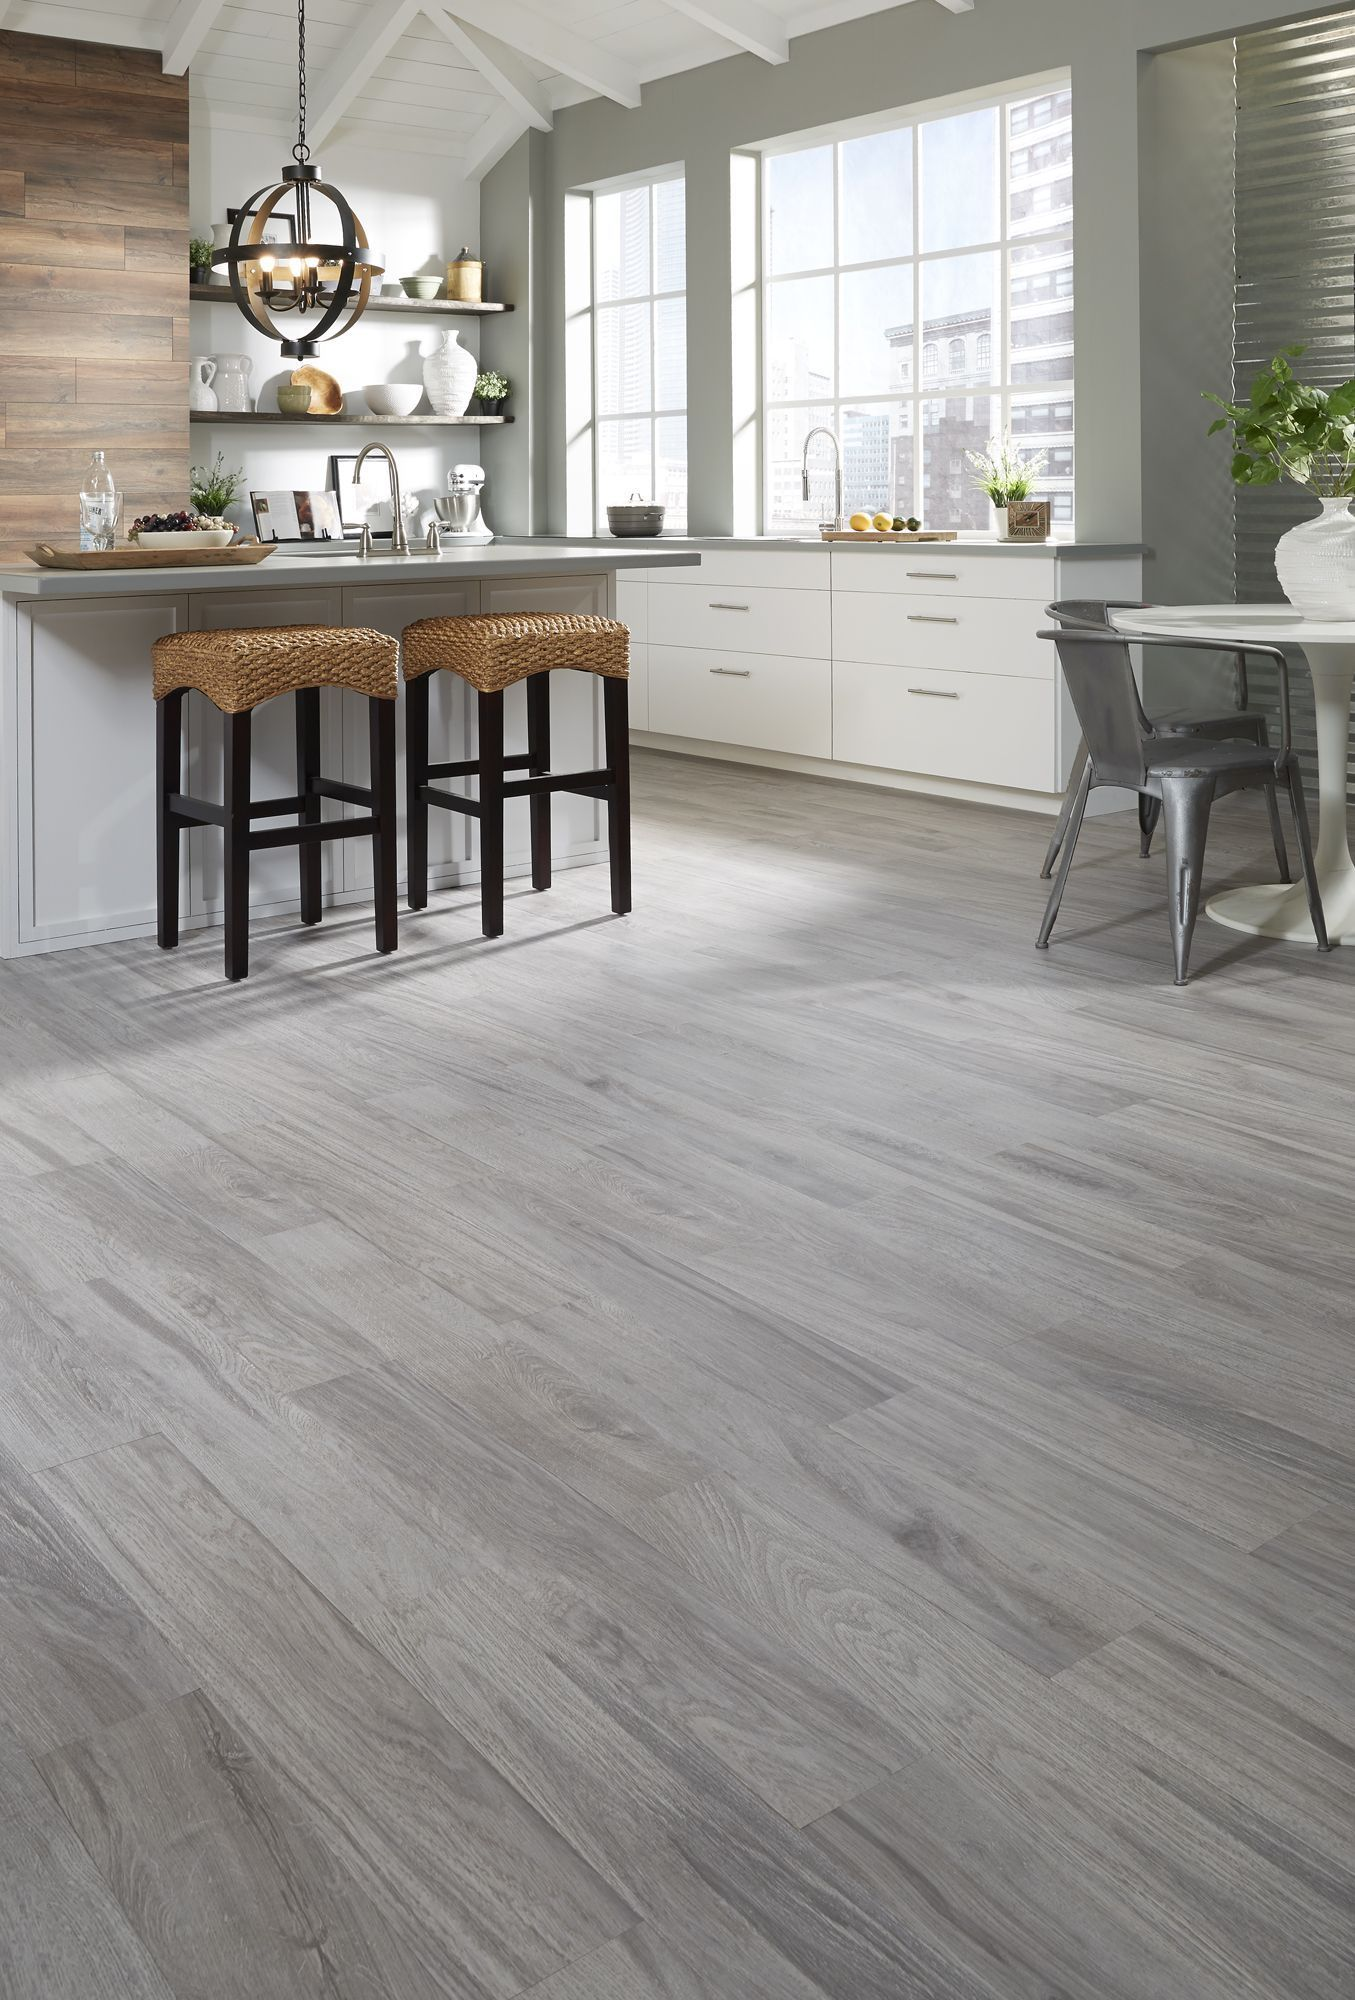 Are You In The Middle Of A Floor Restructure Project Or Are You Bearing In Mind Remodeli Living Room Wood Floor Tile Floor Living Room Gray Wood Tile Flooring